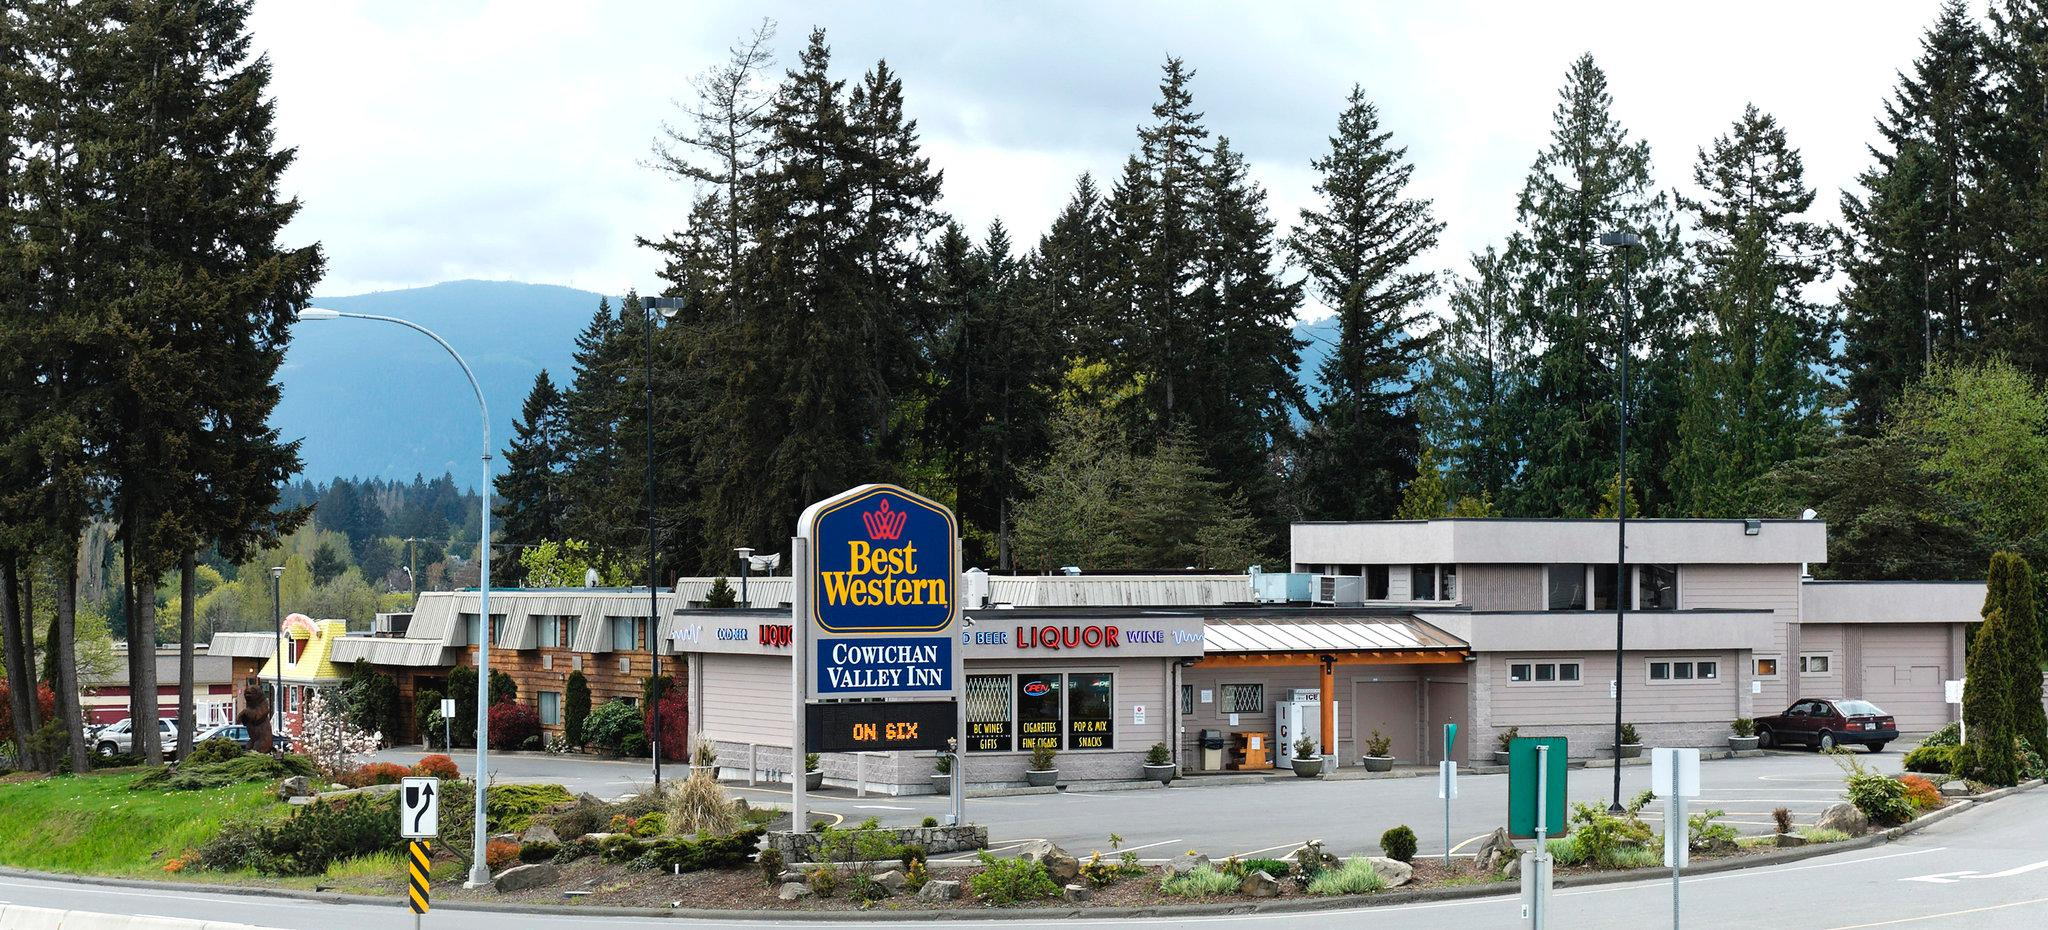 BEST WESTERN Cowichan Valley Inn